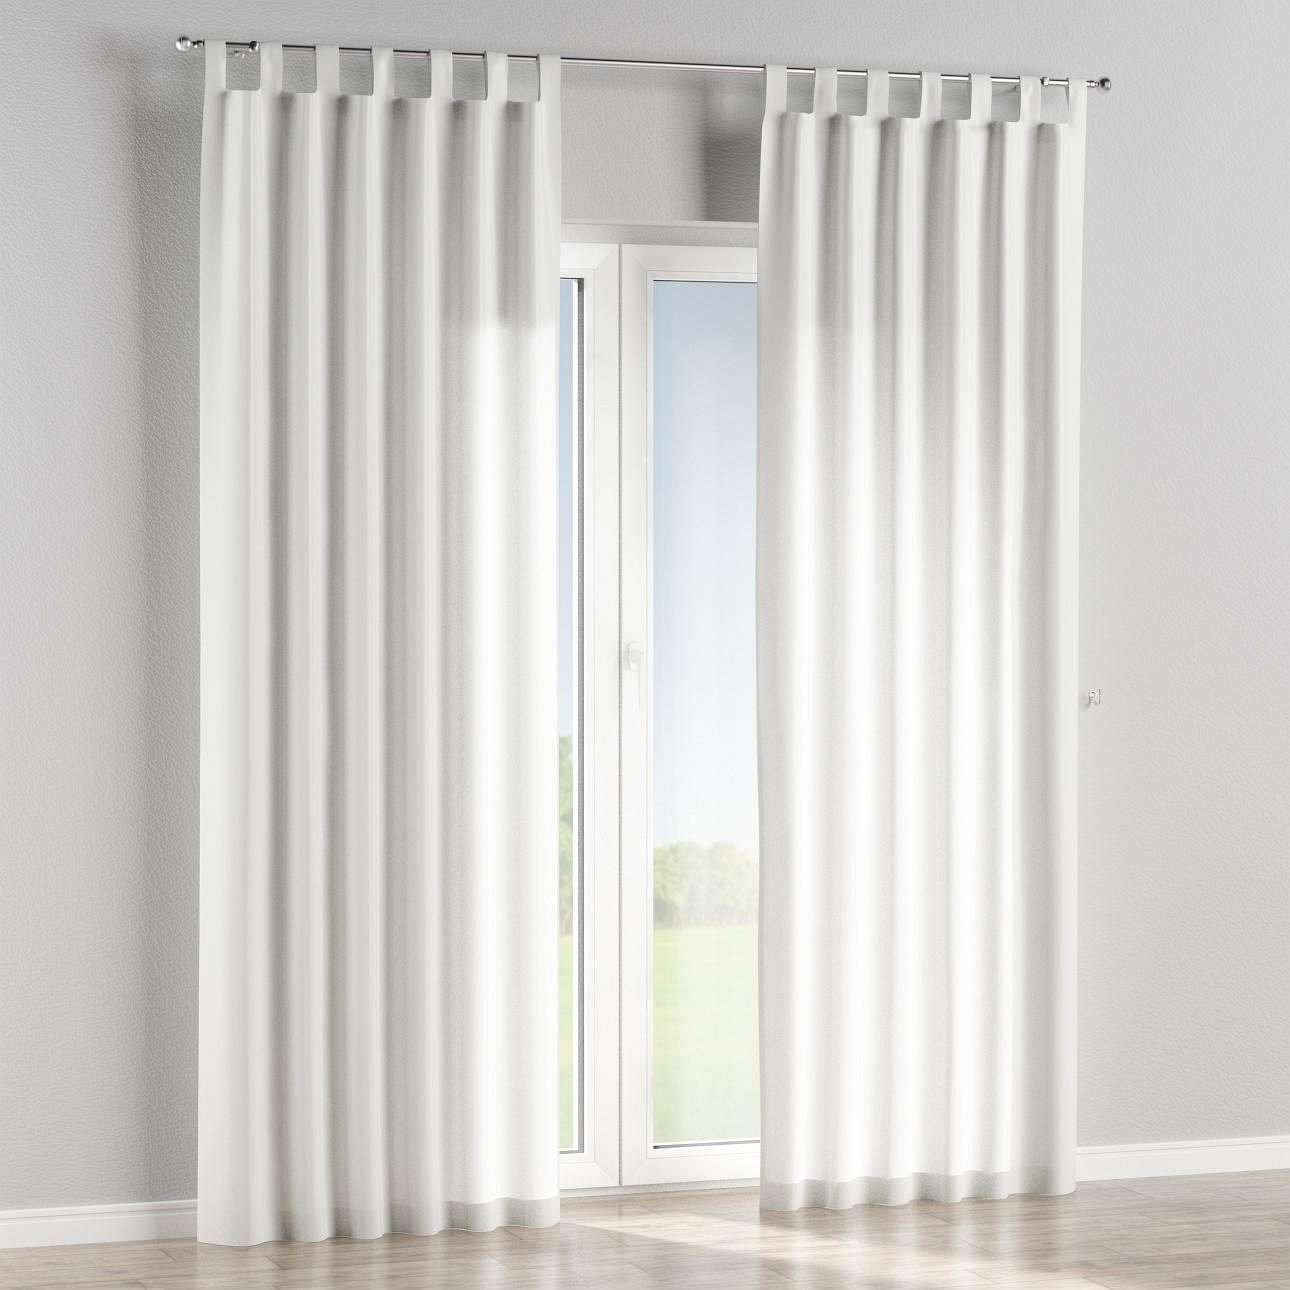 Tab top curtains in collection Rustica, fabric: 138-15